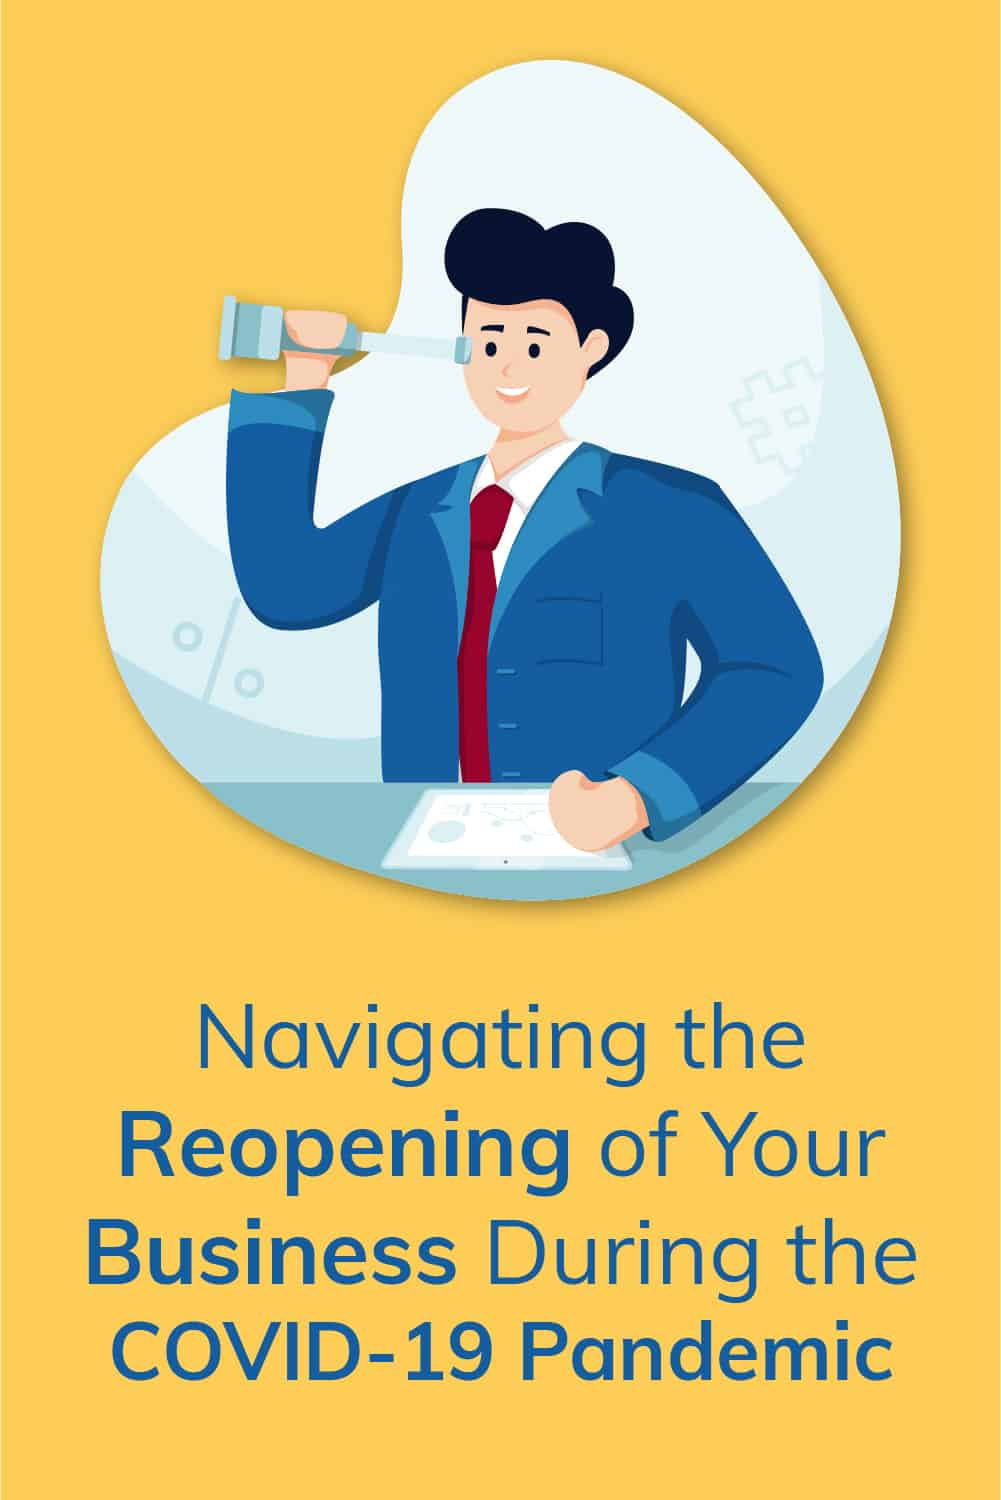 Reopening your business during the pandemic requires careful planning and attention to details. Here are a few tips to navigate your reopening. via @scopedesign